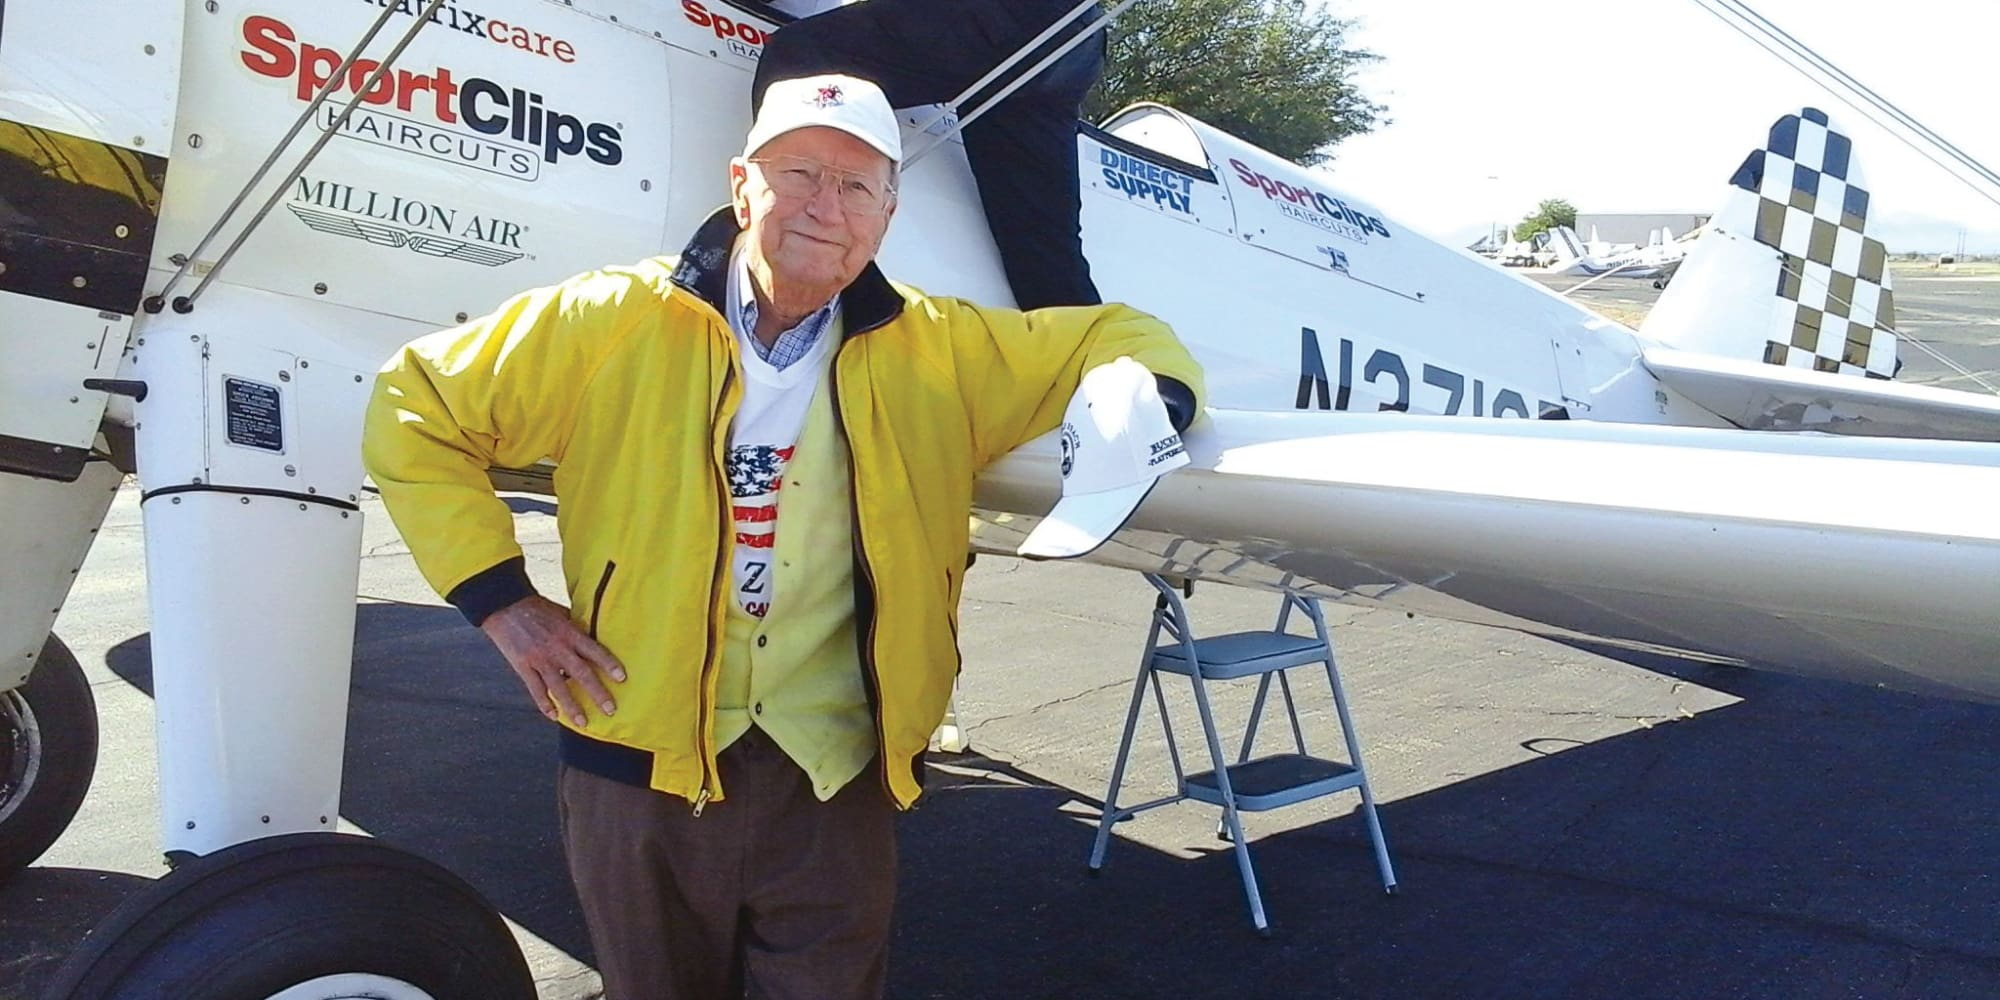 A resident from Fairview Estates Gracious Retirement Living in Hopkinton, Massachusetts posing next to a plane